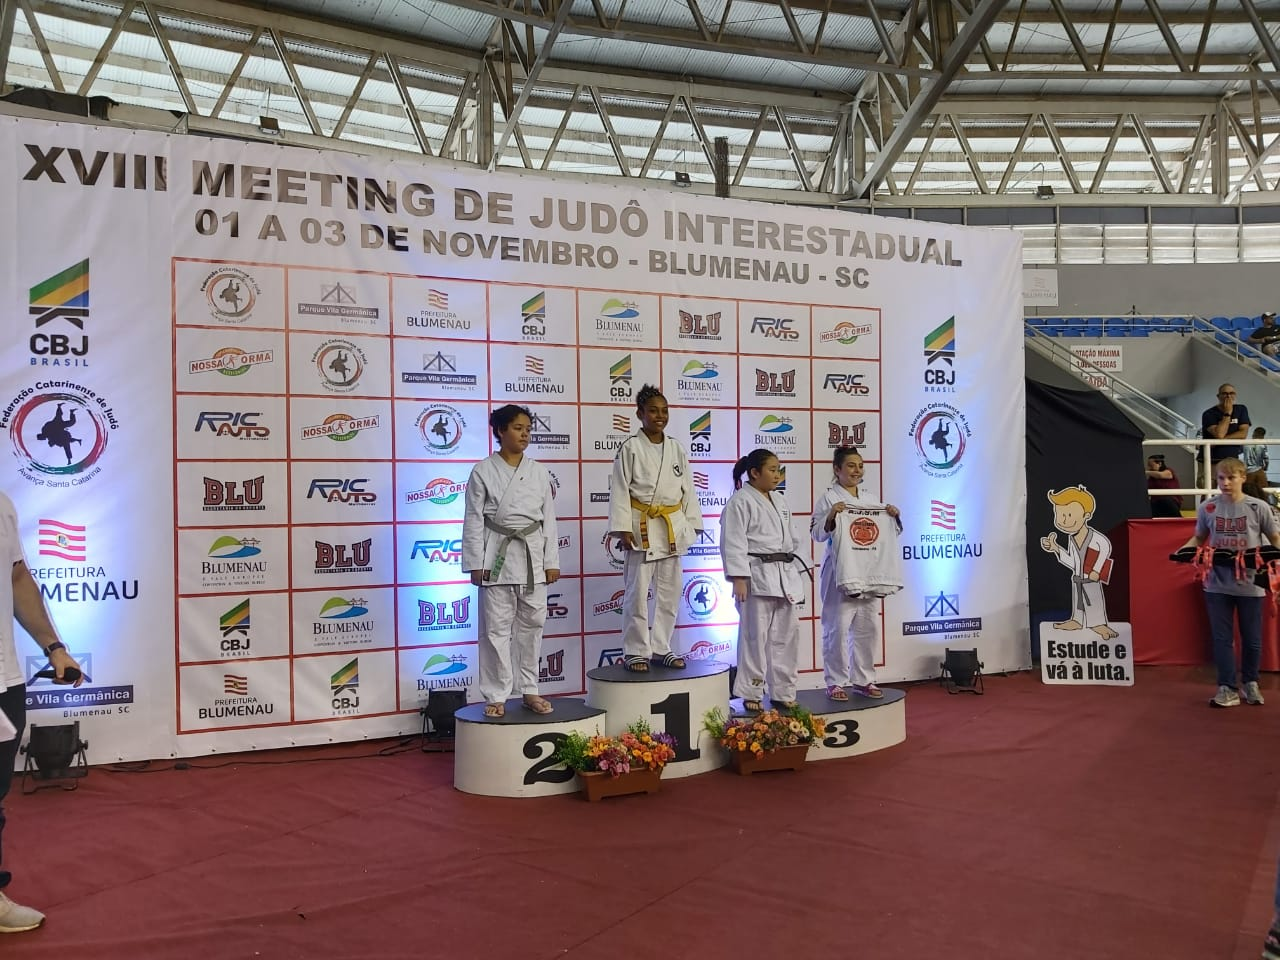 Caroline Akemi conquista bronze no 18ª Meeting Interestadual em Santa Catarina